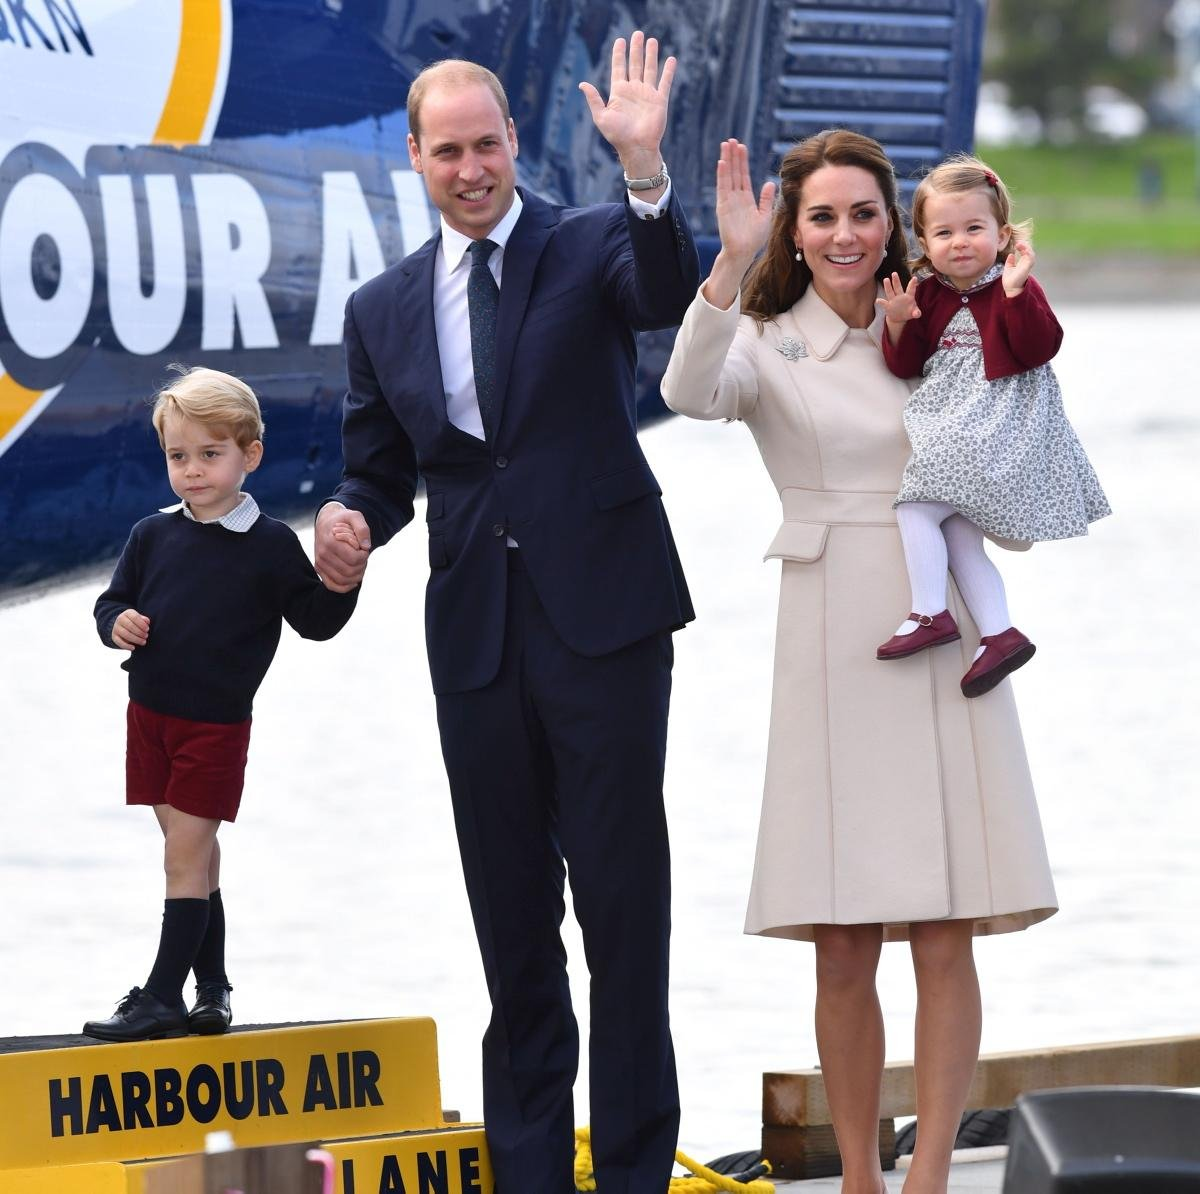 2016 Royal Tour Canada Duke and Duchess of Cambridge Google image from http://assets.nydailynews.com/polopoly_fs/1.2814690.1475423907!/img/httpImage/image.jpg_gen/derivatives/gallery_1200/2016-royal-tour-canada-duke-duchess-cambridge-victoria.jpg